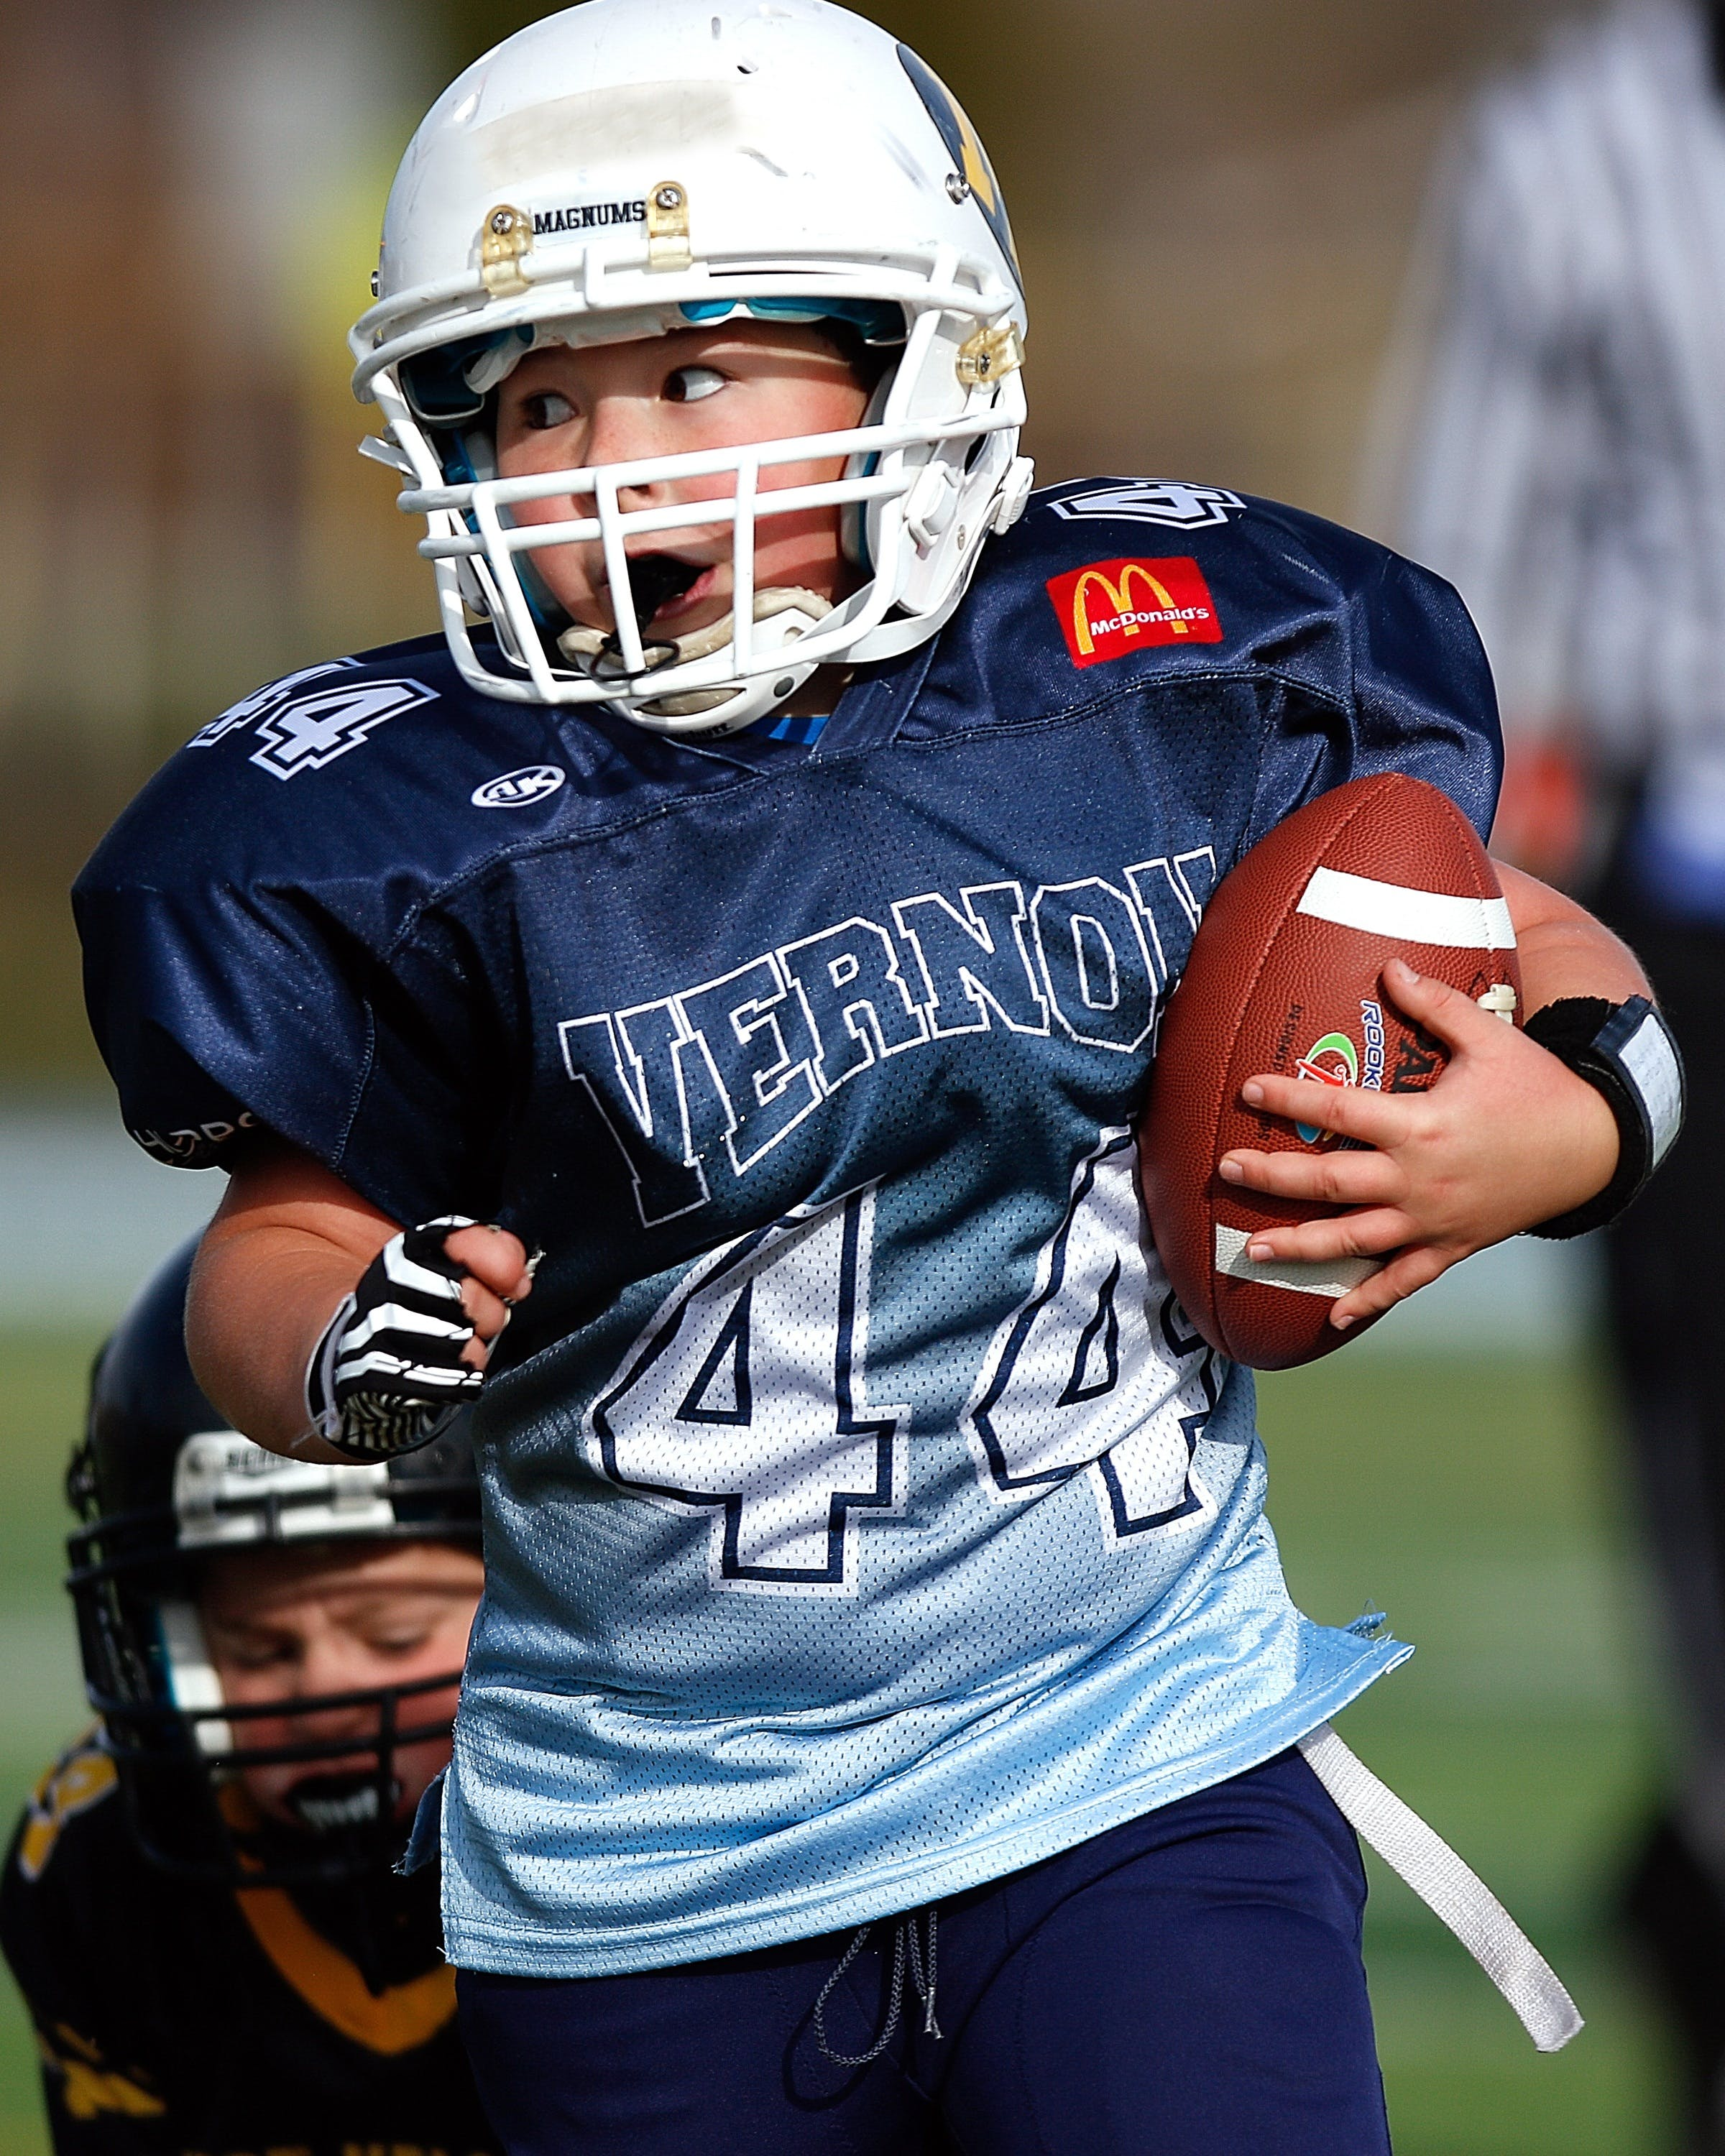 Boy Wearing Football Gear While Holding Football